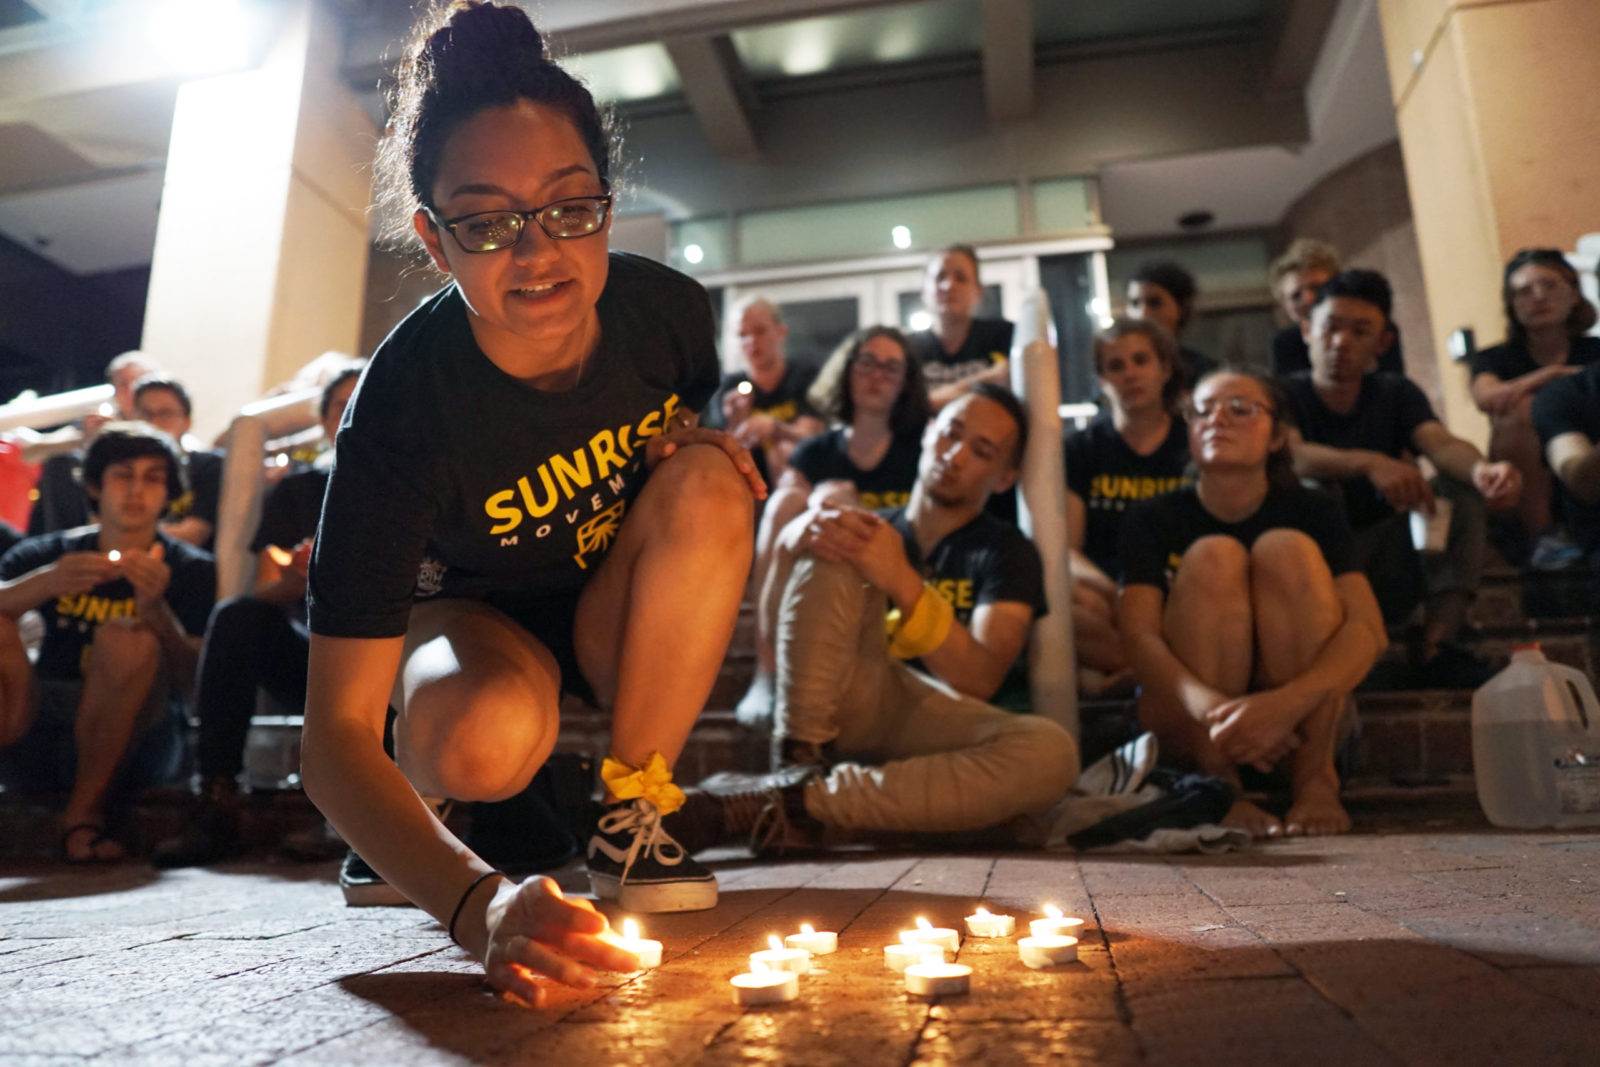 A Sunrise organizer lights candles on the sidewalk in front of the DNC headquarters in DC as protesters prepare for their first night camping out as part of the sit-in.